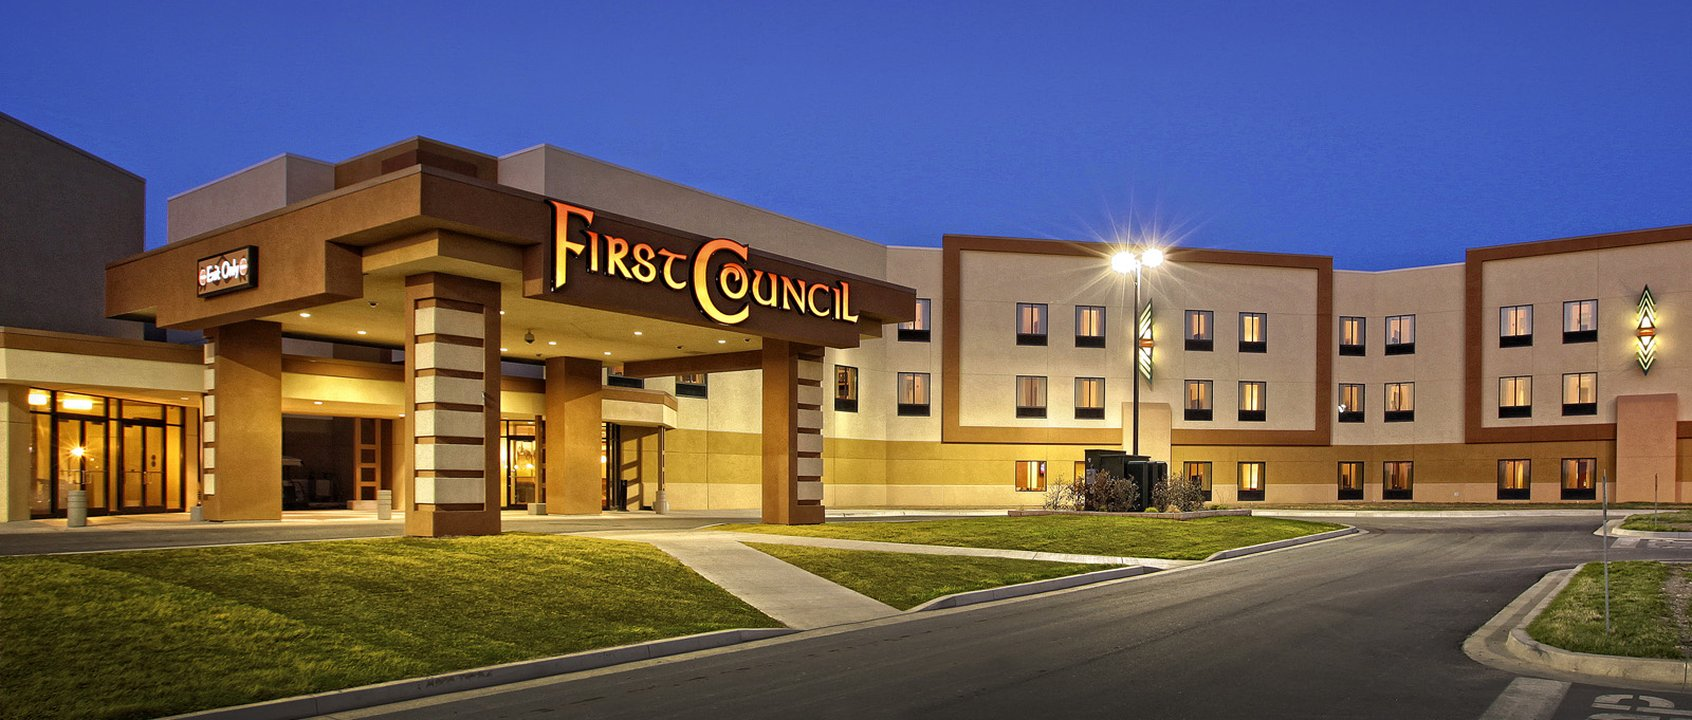 First counsil casino in ok mobile casino entertainment